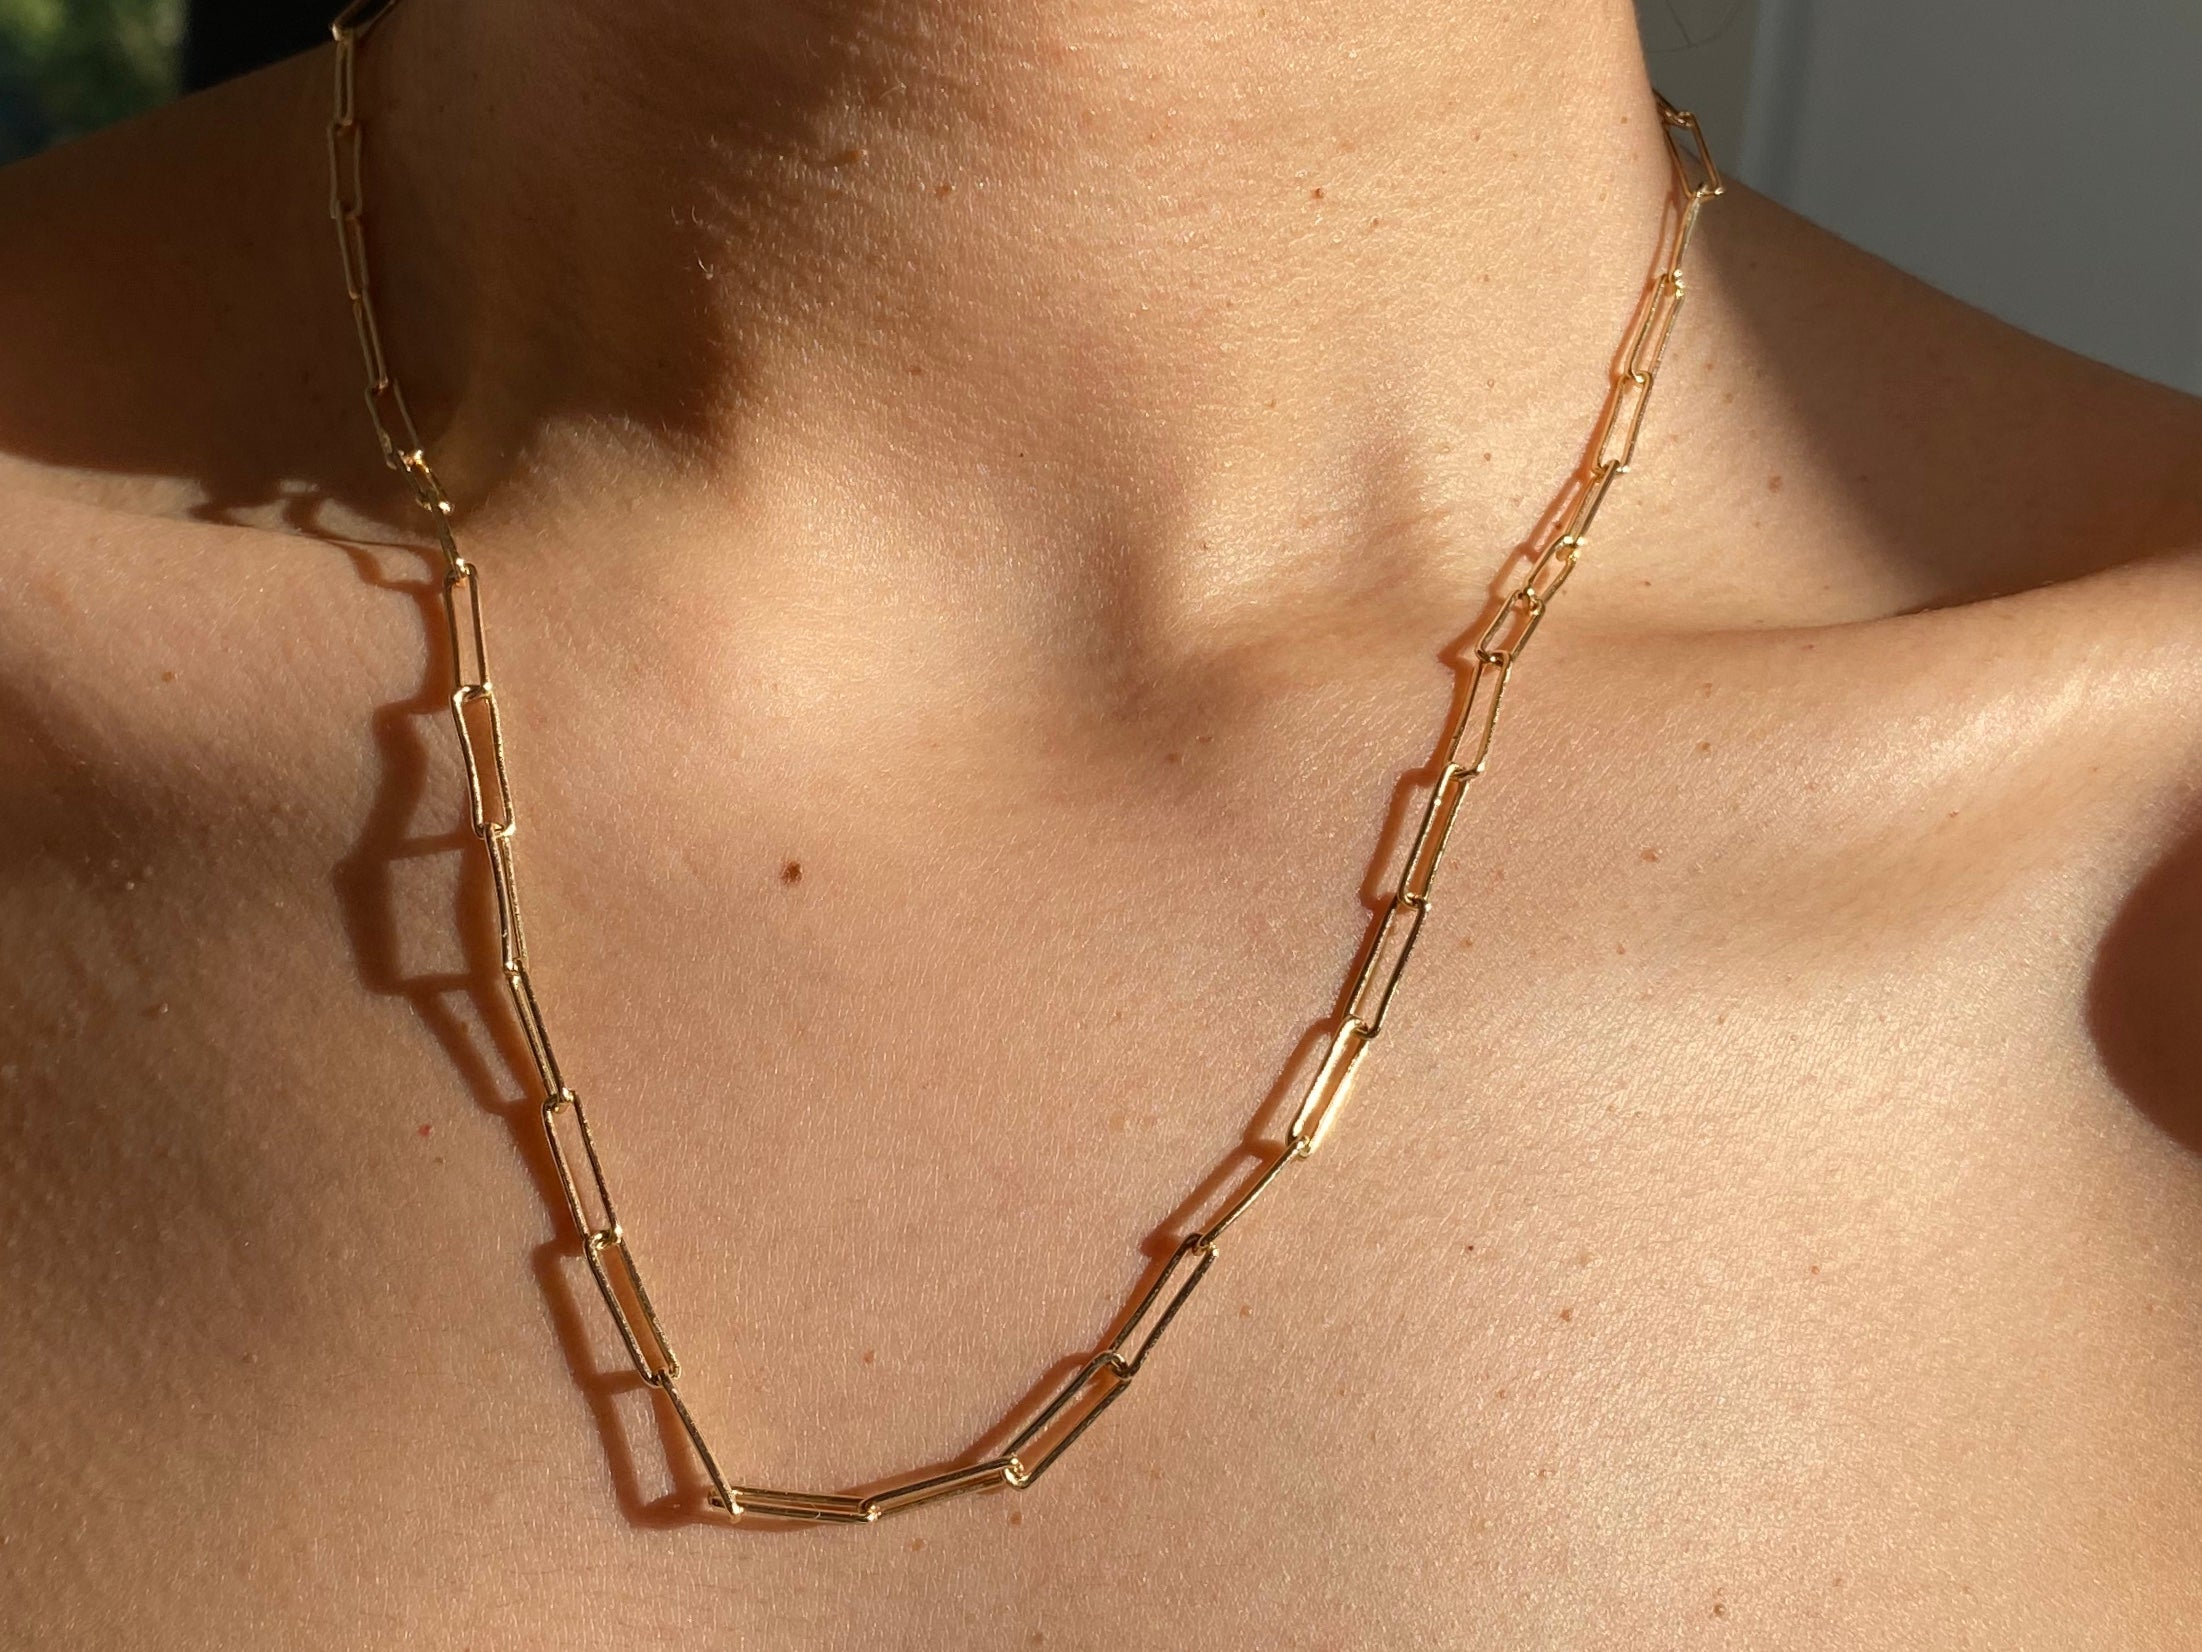 Paper clip necklace, paper clip chain, paper clip jewelry, paper clip necklace, gold necklace, thick chain necklace